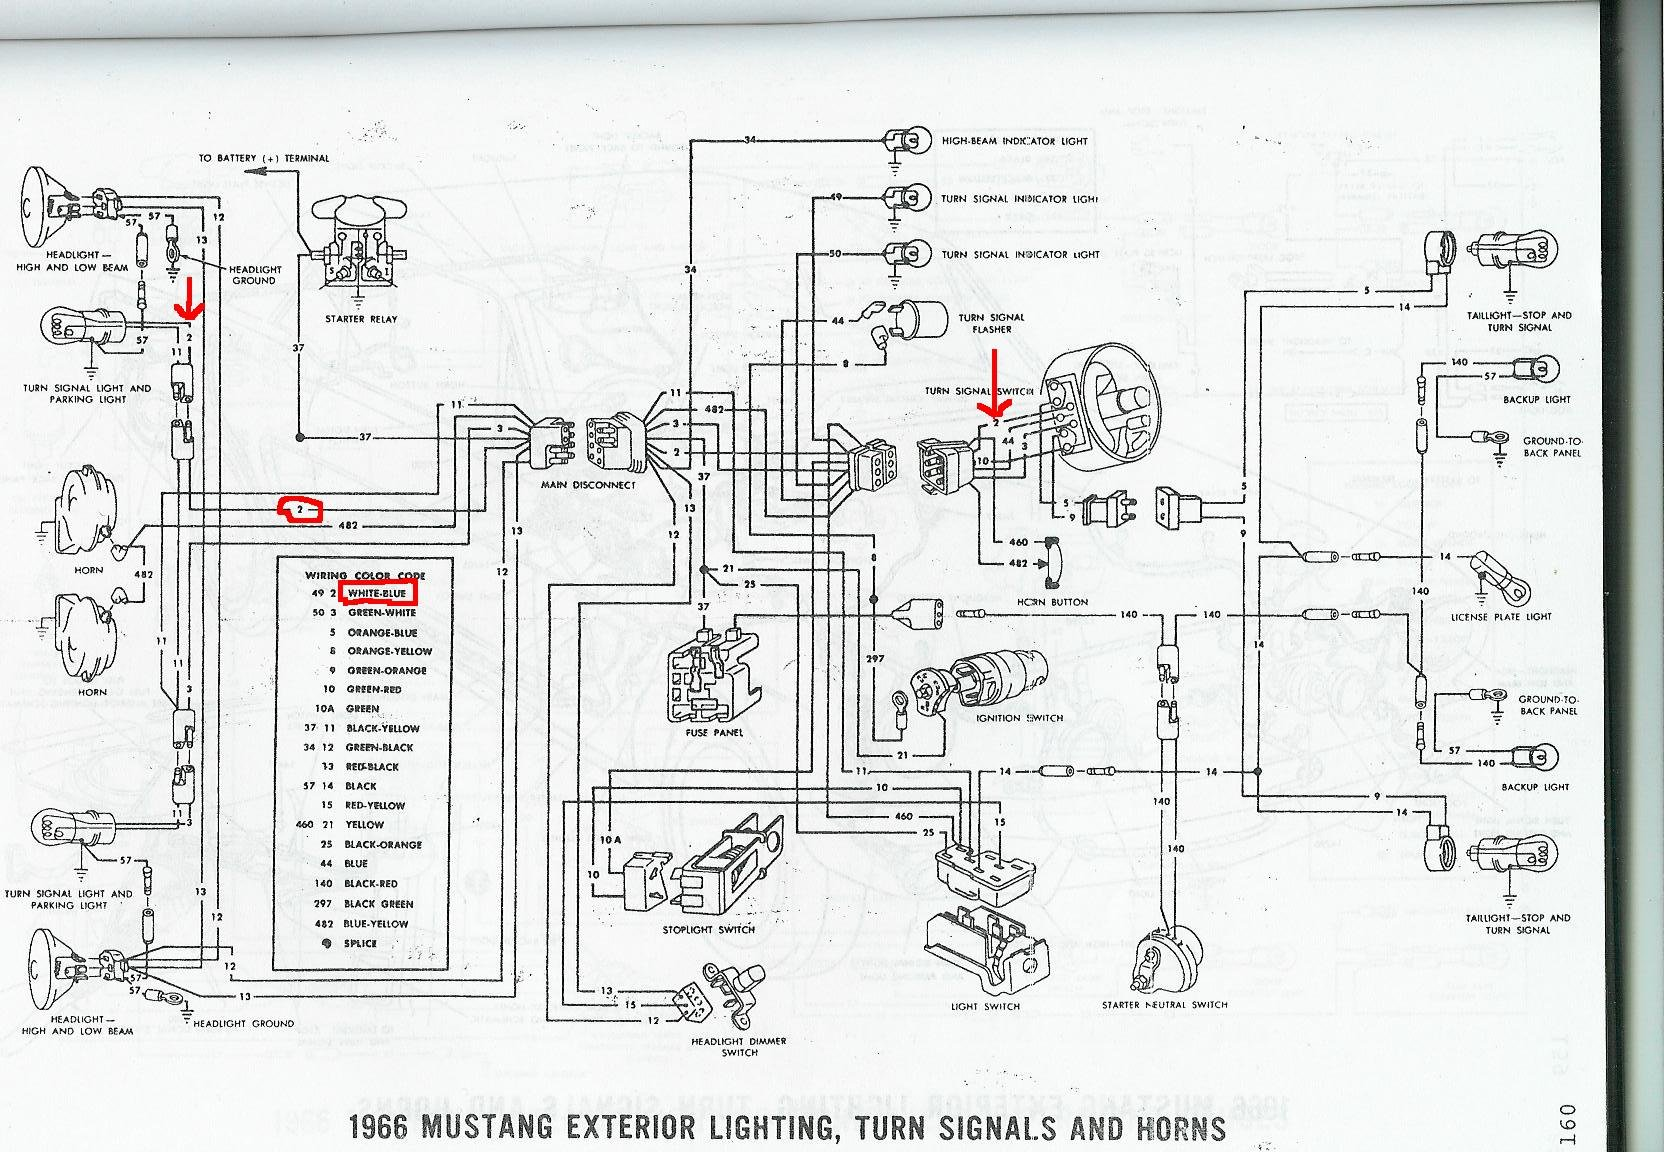 1968 impala wiring diagram lights wiring diagram database1968 impala turn signal wiring diagram wiring diagram data schema 1968 impala wiring diagram lights